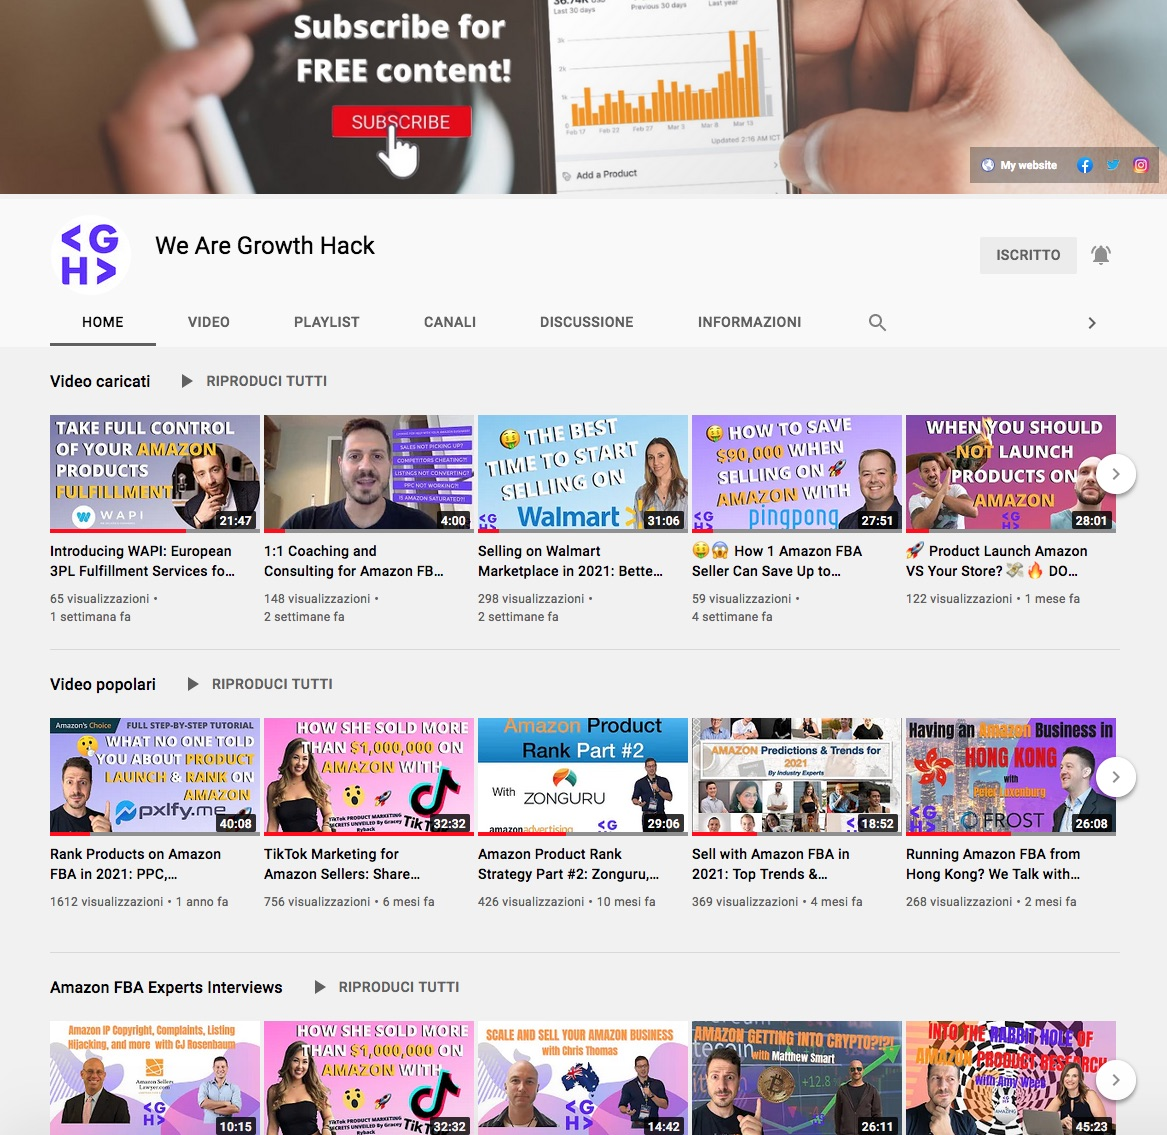 We Are Growth Hack on YouTube